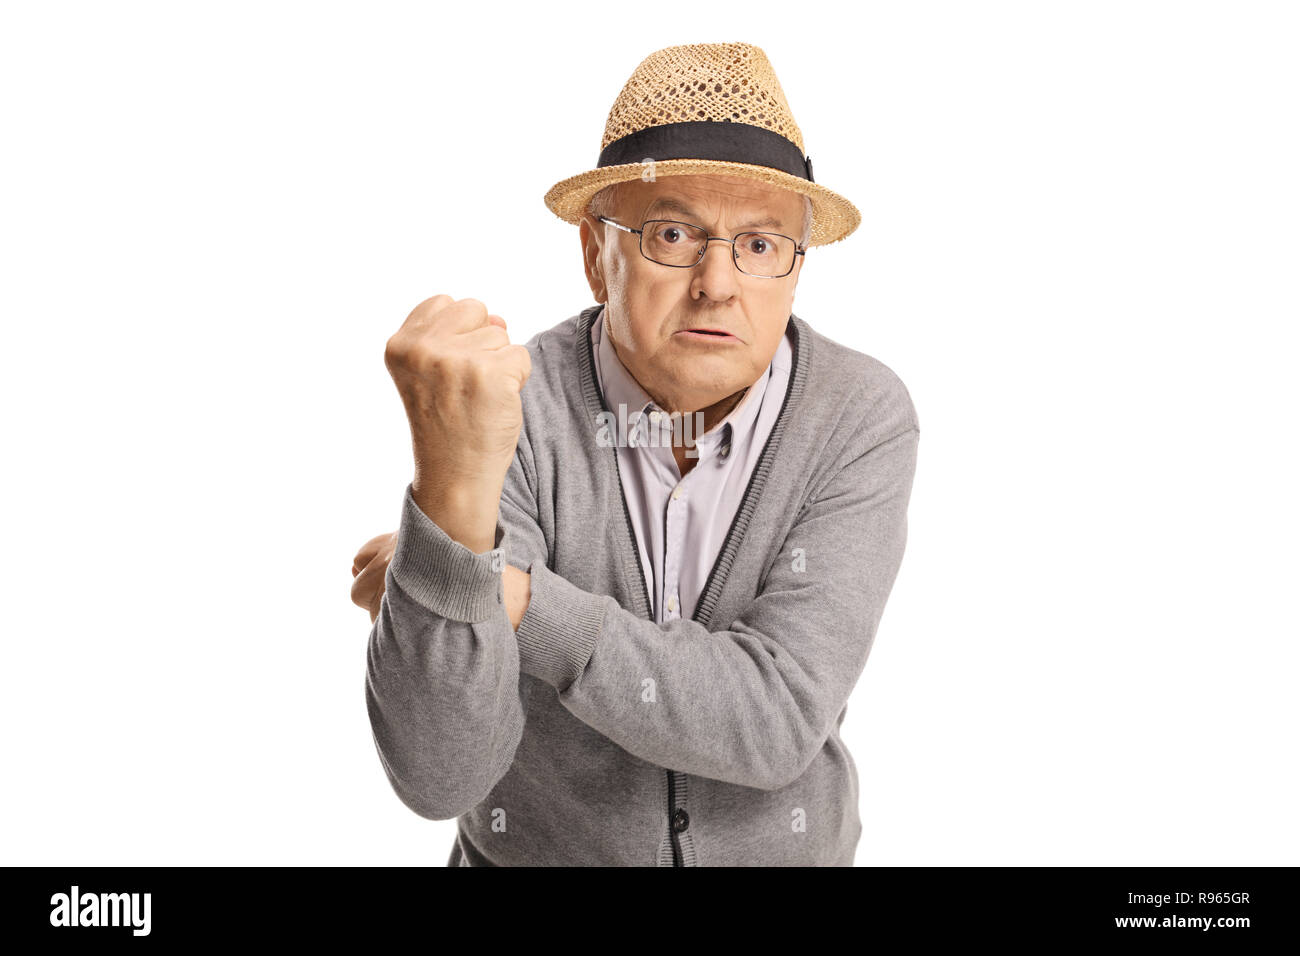 Angry senior man gesturing with hands isolated on white background - Stock Image